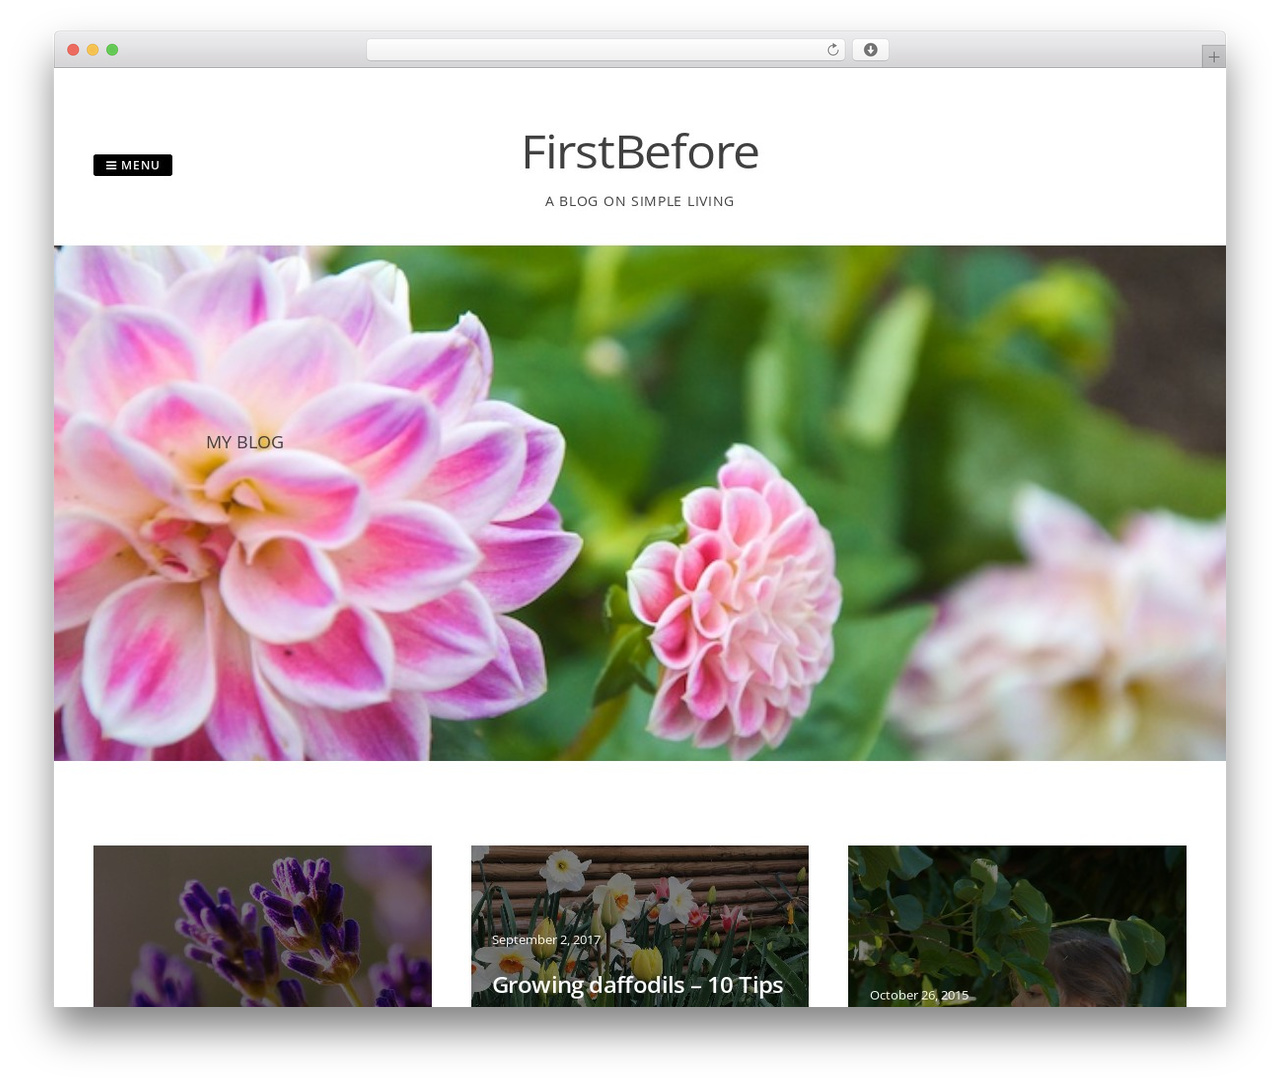 WordPress theme Gridsby Pro - firstbefore.com